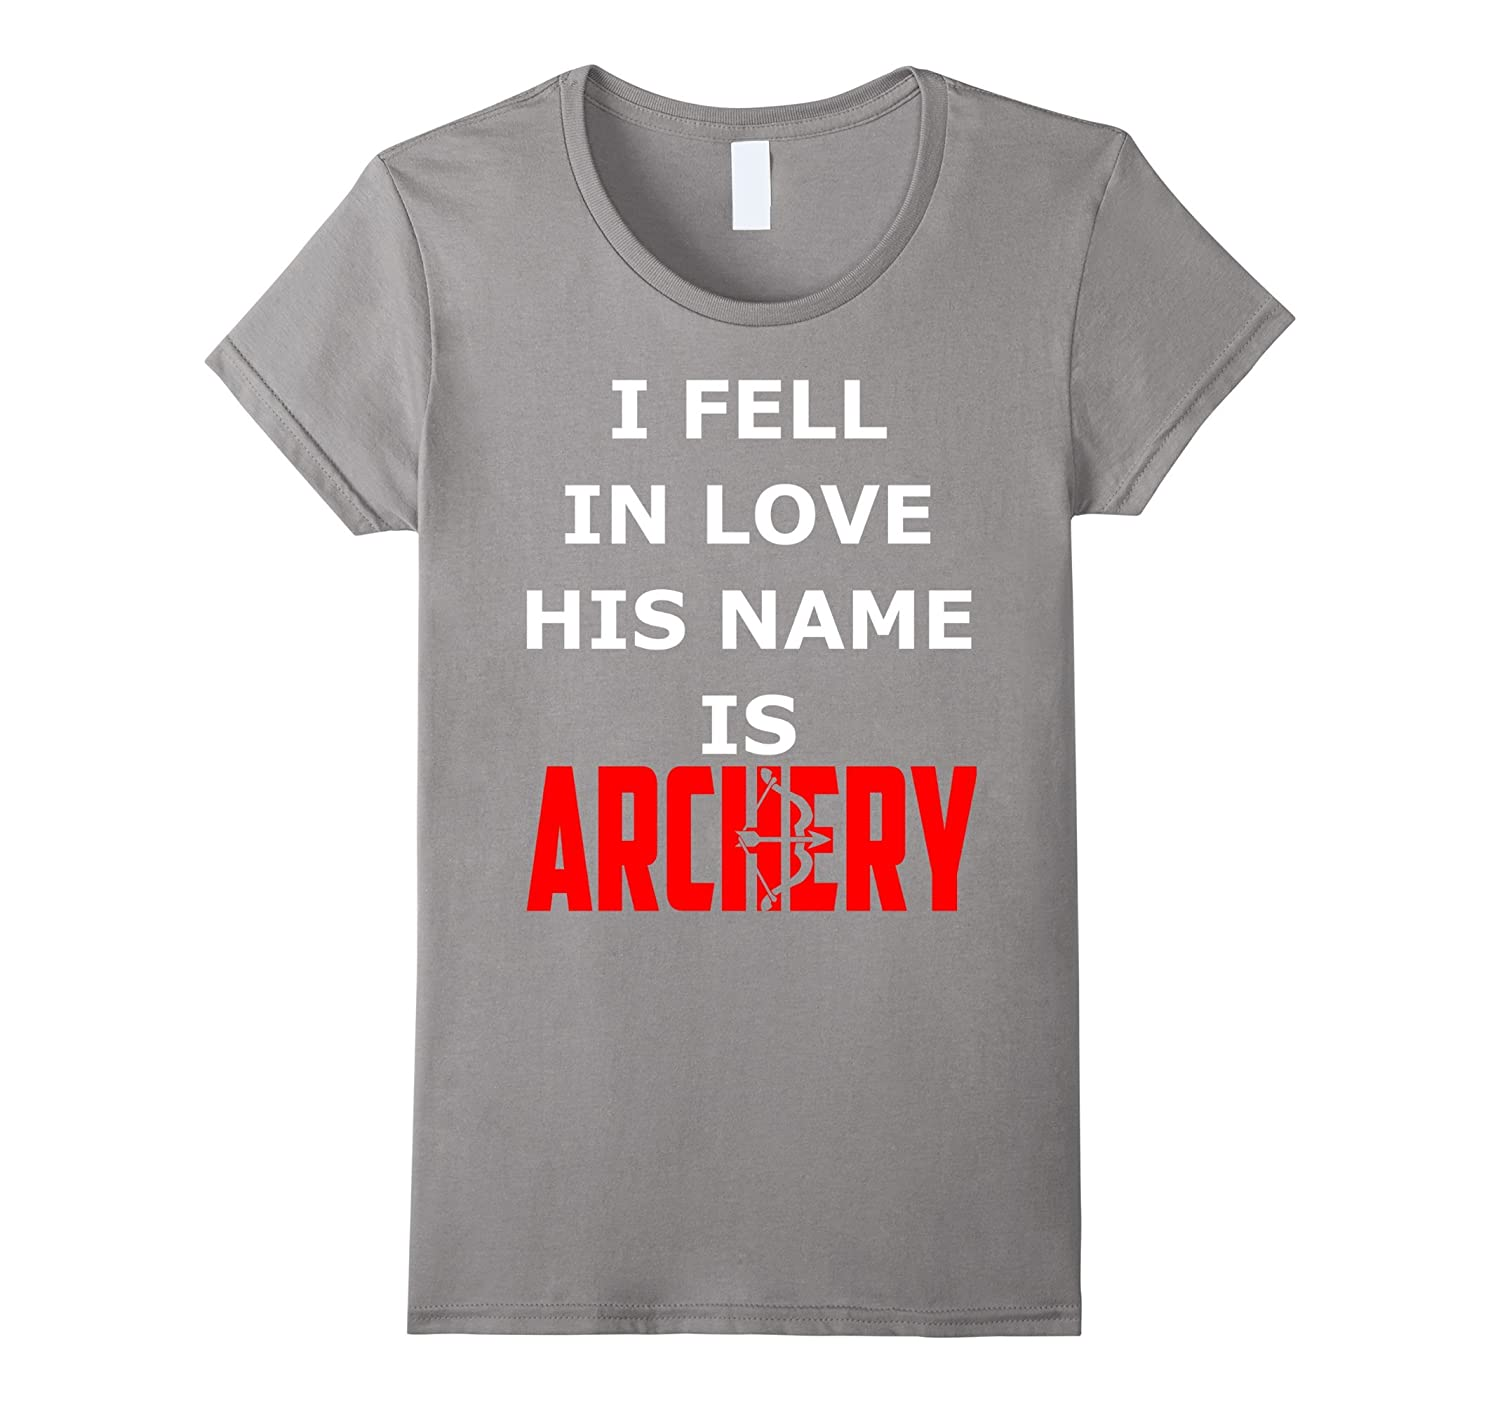 I Fell In Love His Name Is Archery Funny Shirt Gift